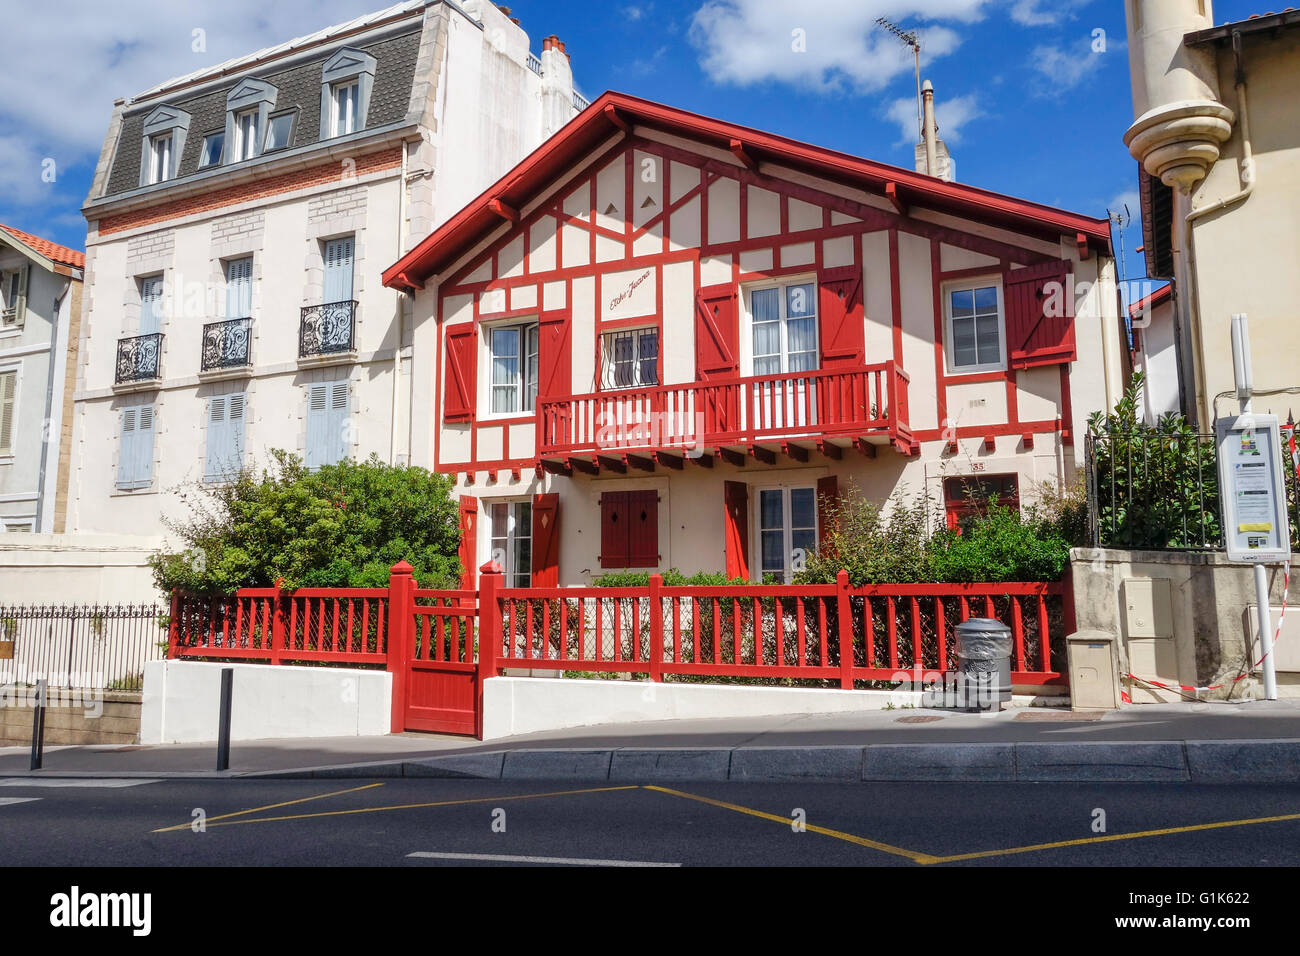 typical basque architecture red house biarritz aquitaine french stock photo 104298714 alamy. Black Bedroom Furniture Sets. Home Design Ideas